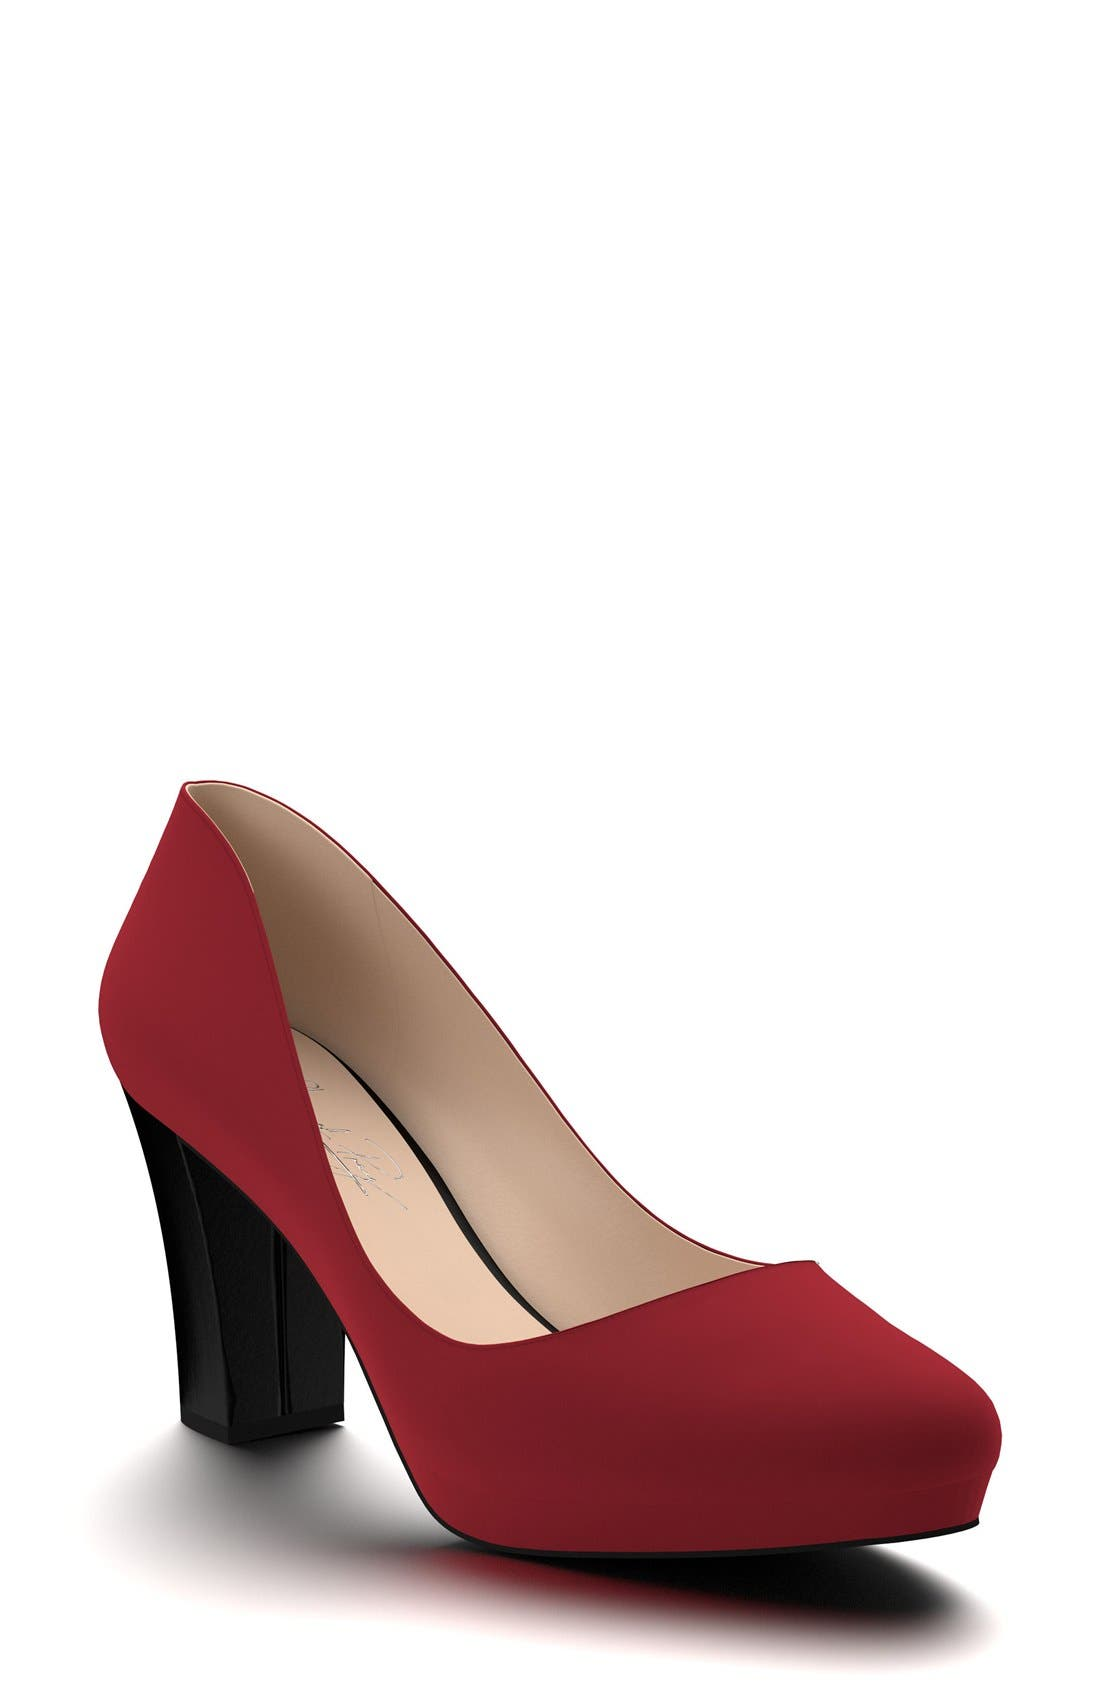 SHOES OF PREY Block Heel Platform Pump